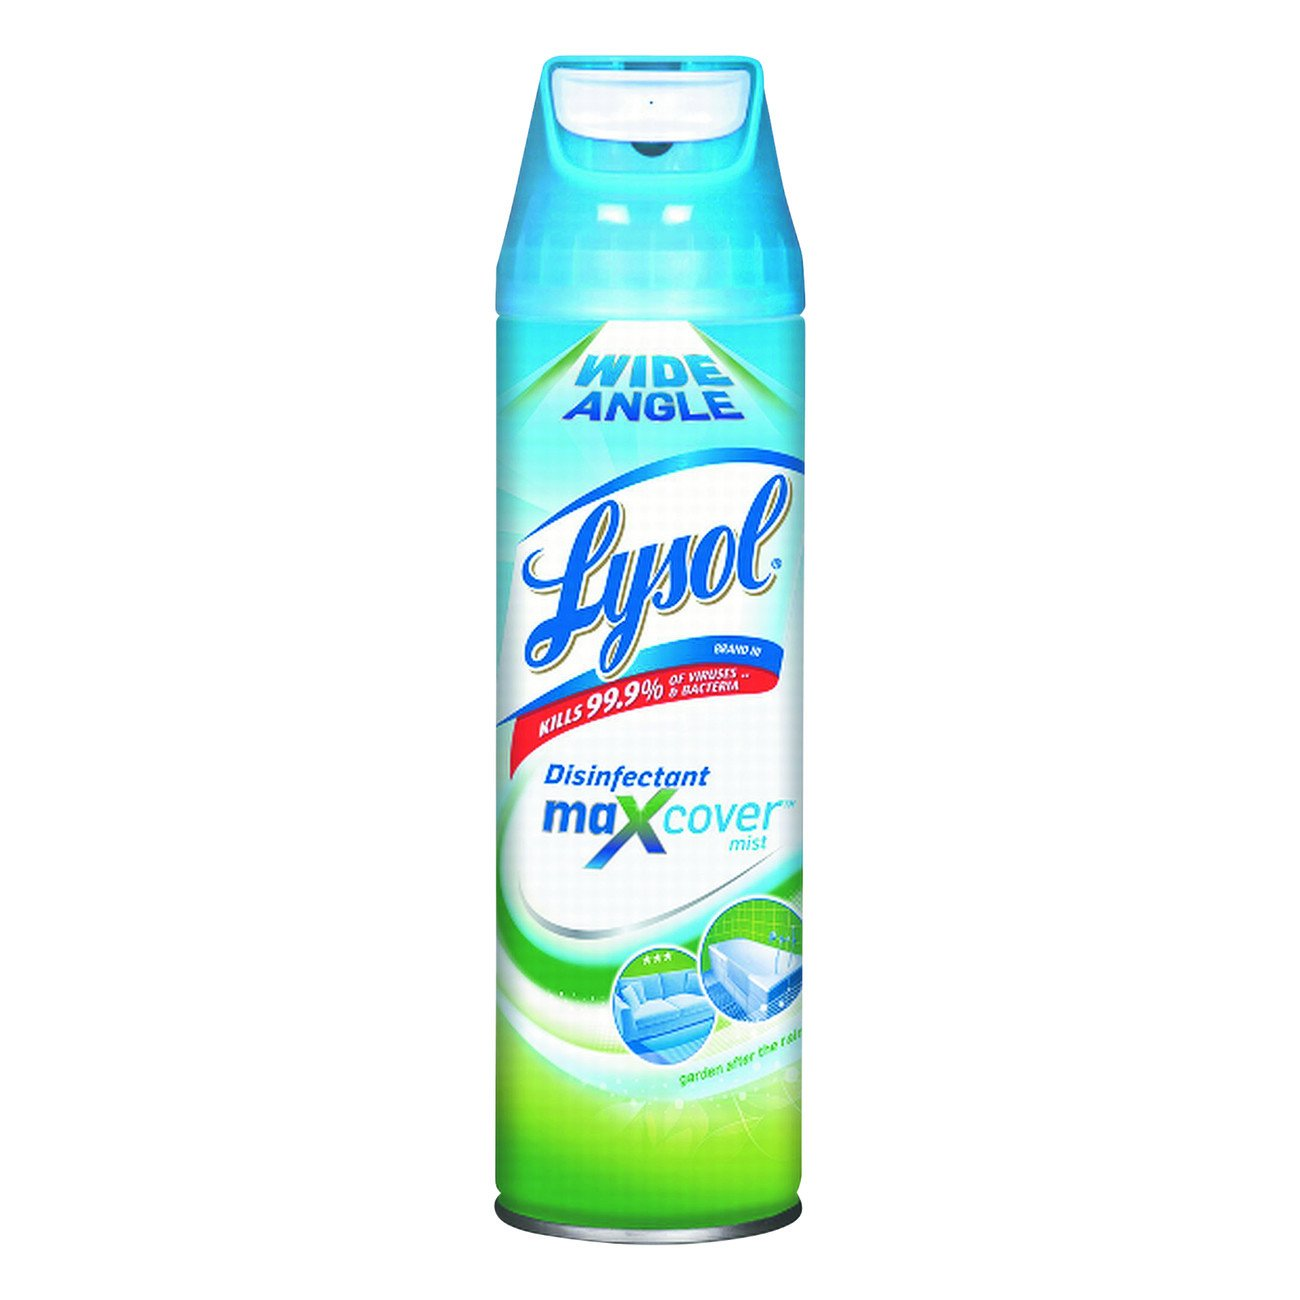 LYSOL Brand 94122 Lysol Max Cover Disinfectant Mist, Garden After Rain Scent, 15 oz. Volume (Pack of 12)